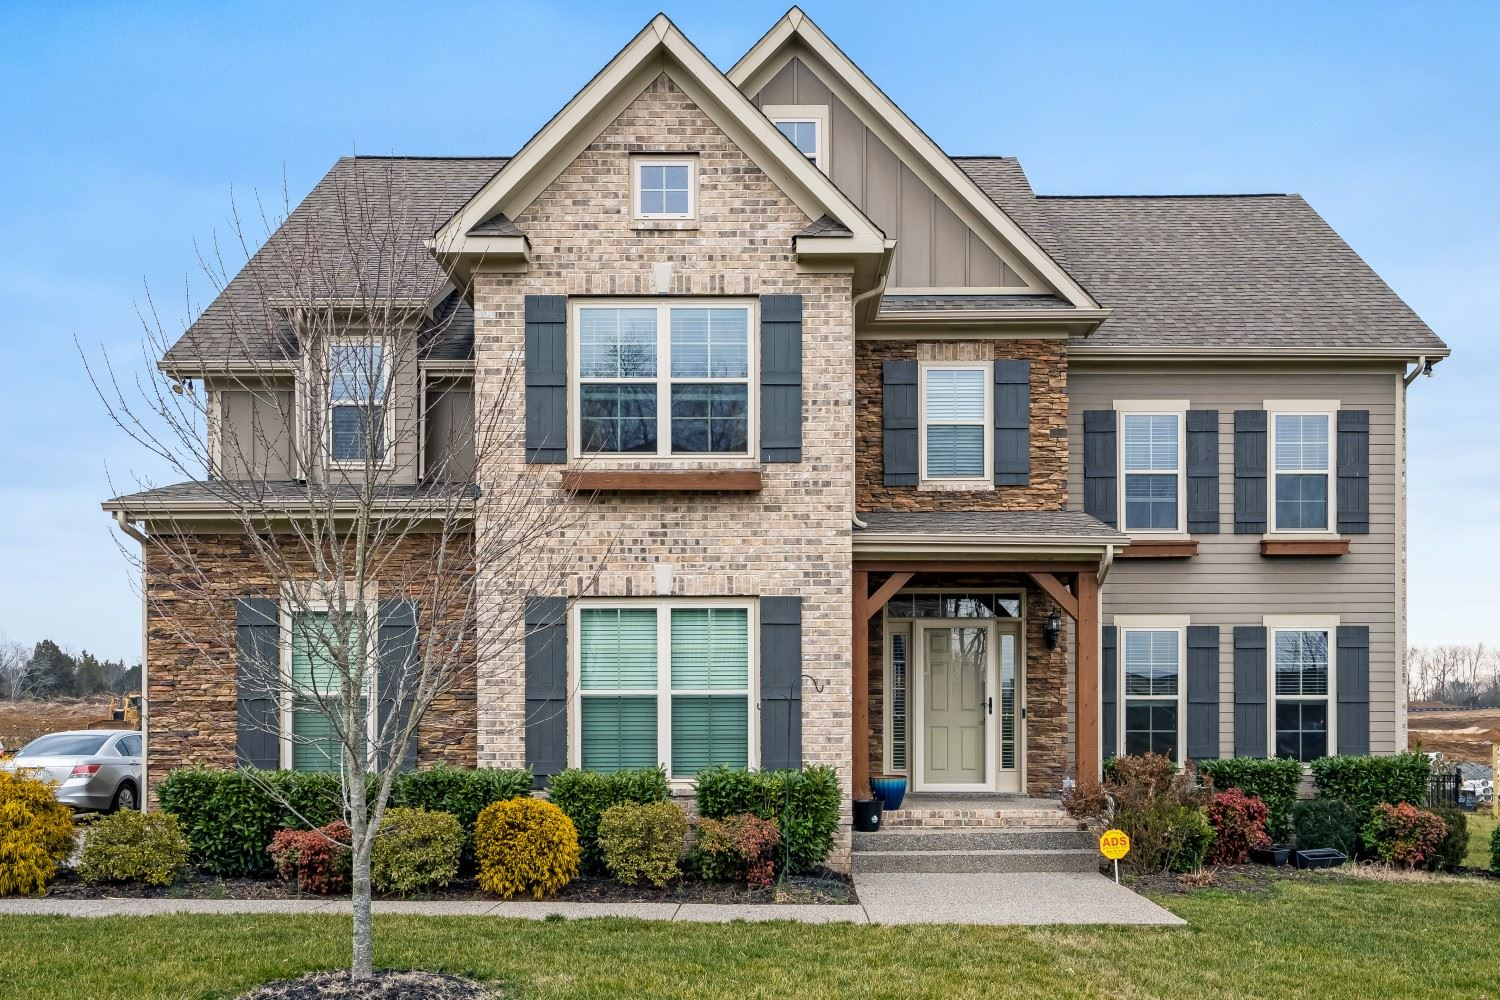 Photo of 1386 Round Hill Ln, Spring Hill, TN 37174 (MLS # 2242398)